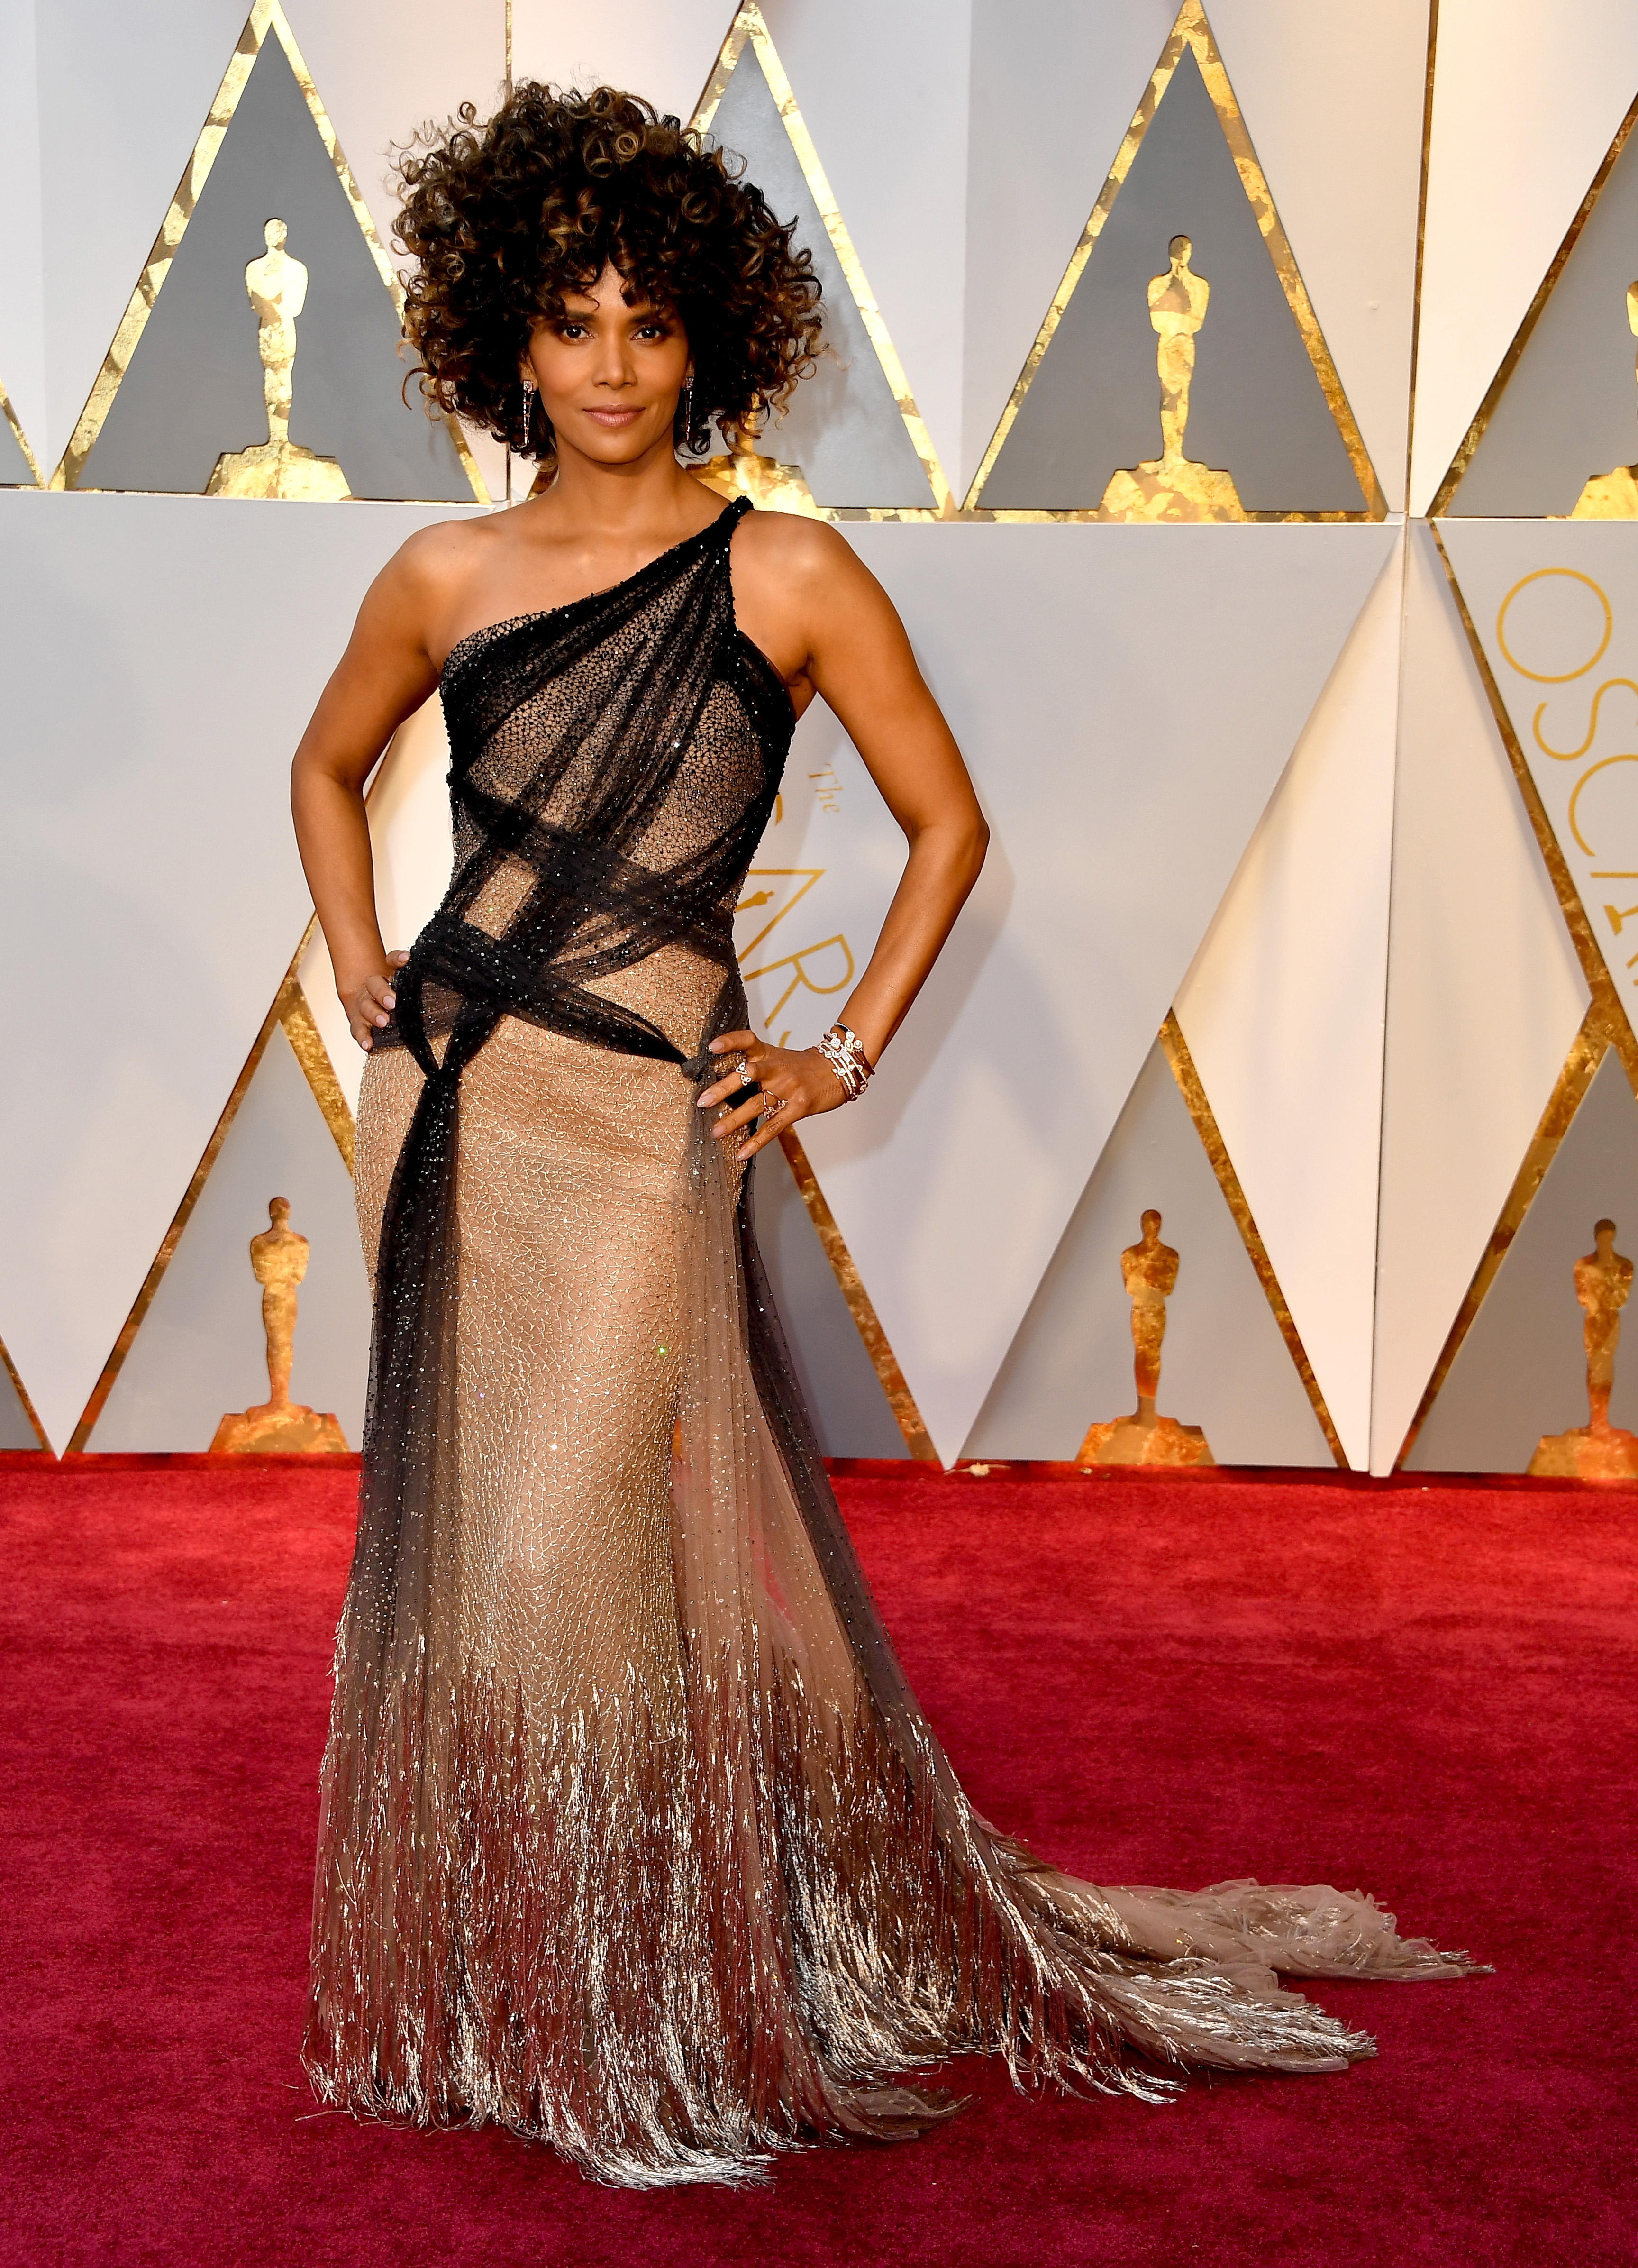 HOLLYWOOD, CA - FEBRUARY 26: Actor Halle Berry attends the 89th Annual Academy Awards at Hollywood & Highland Center on February 26, 2017 in Hollywood, California. (Photo by Steve Granitz/WireImage)